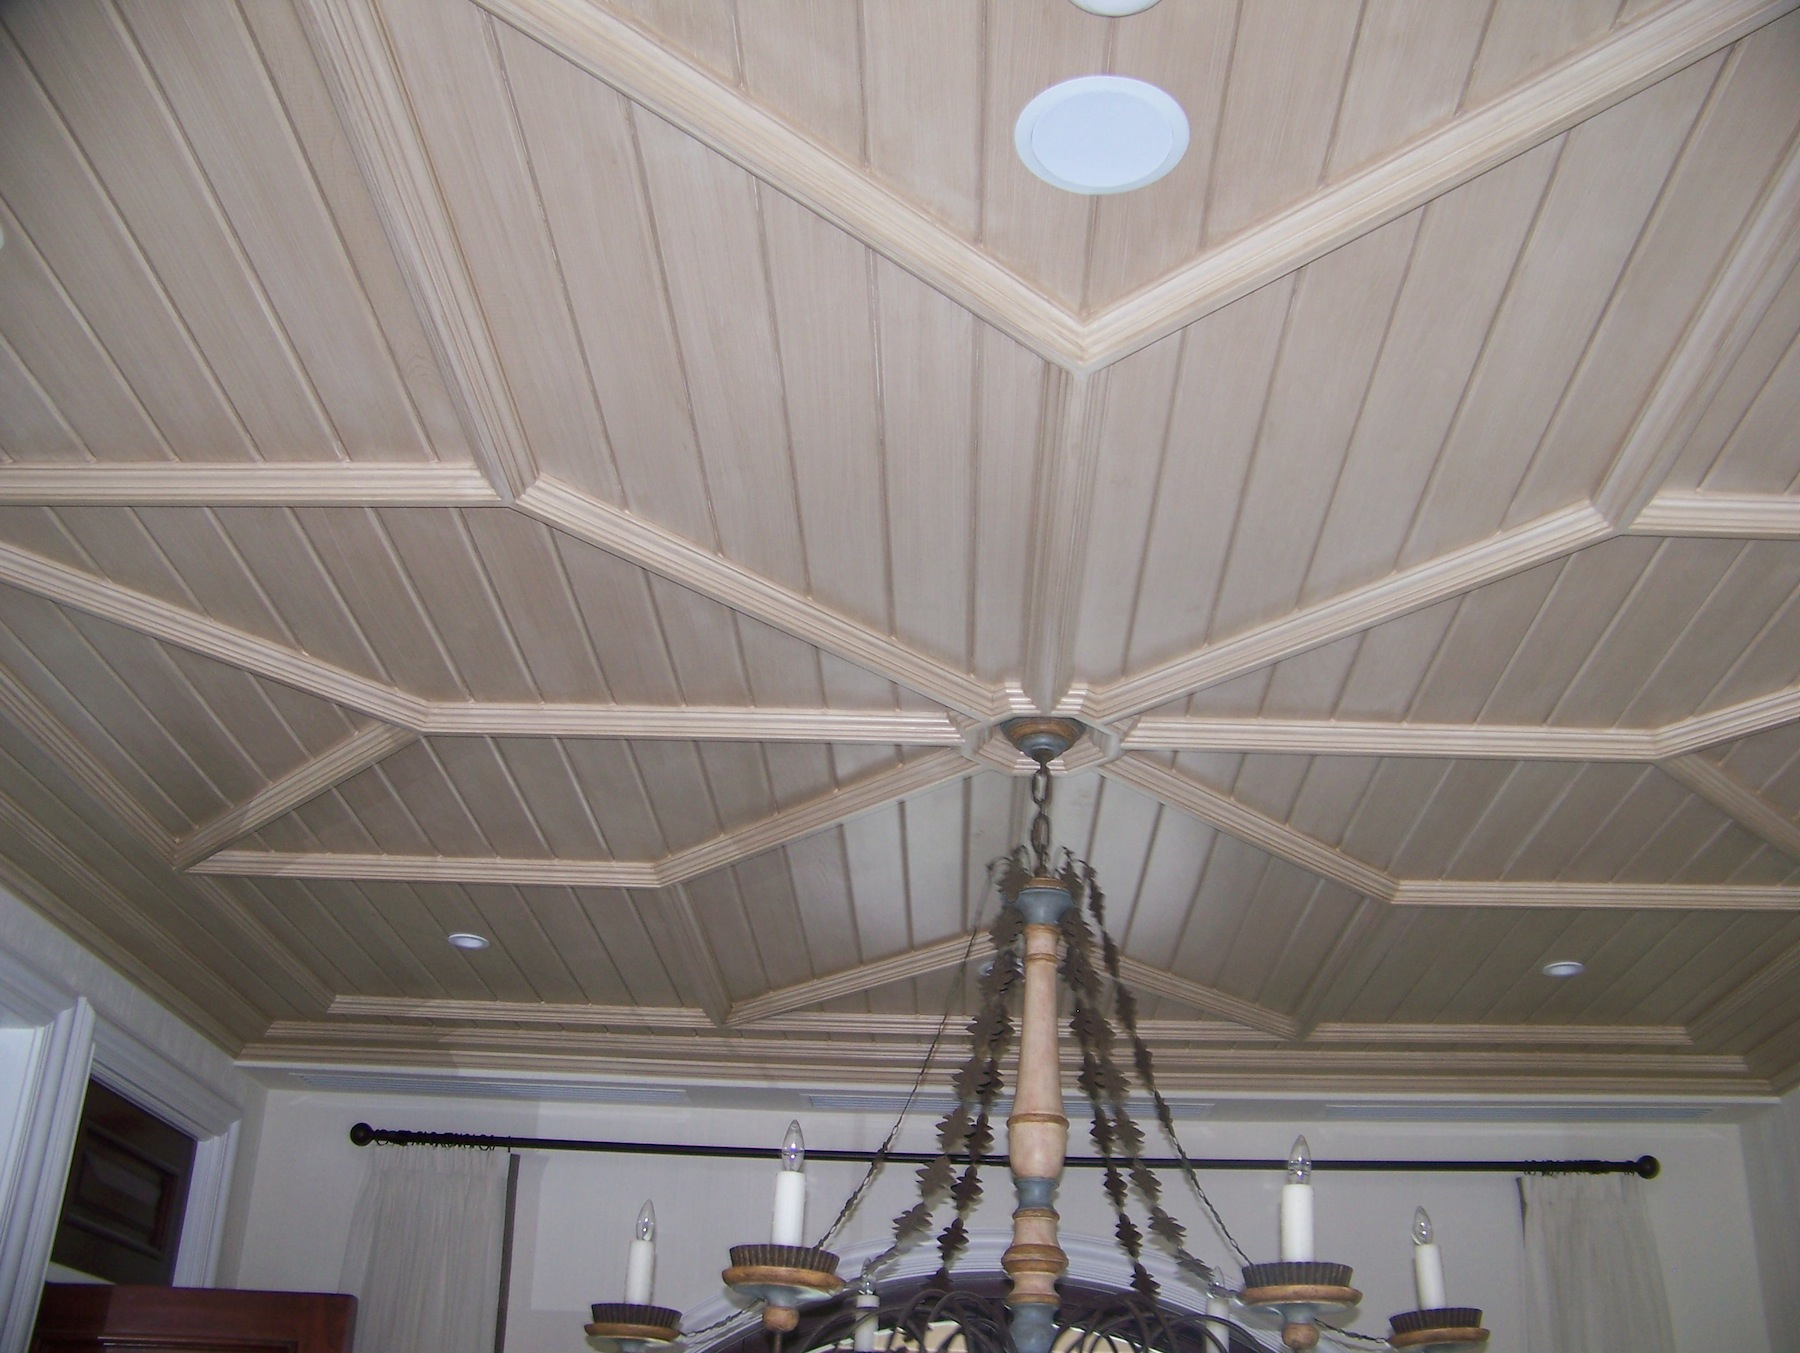 Prefab'd dining room ceiling with decorative millwork<br />- Nassau, Bahamas (Lyford Cay)